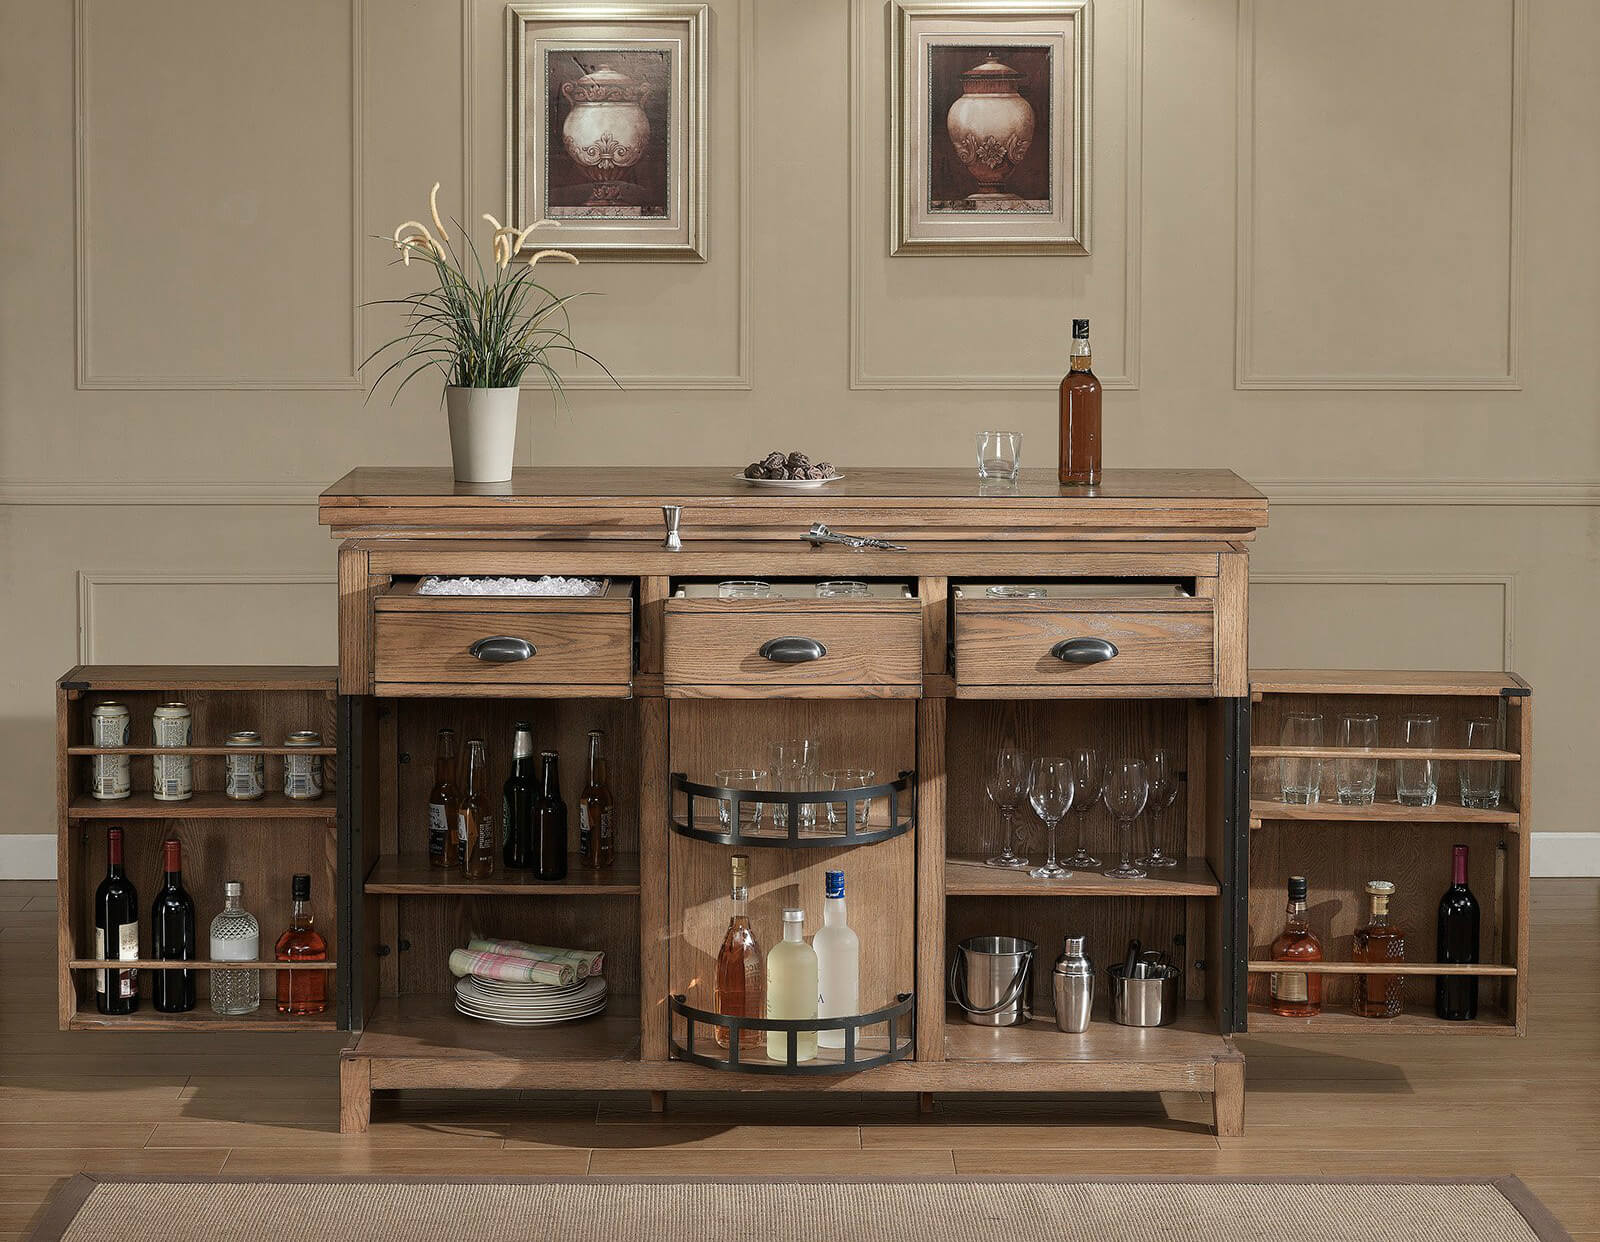 As you can see, the amount of storage in this rustic home bar cabinet